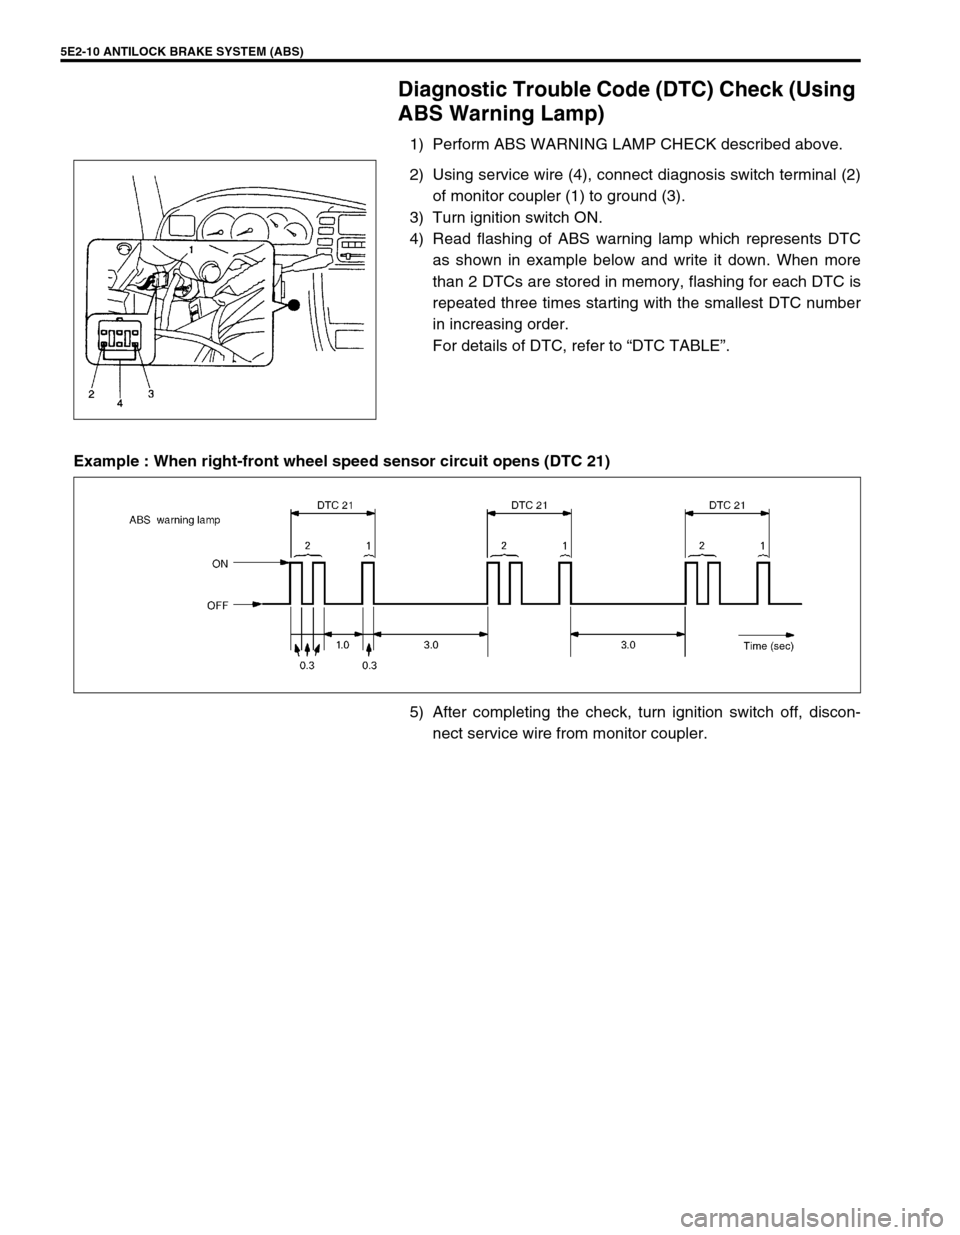 SUZUKI GRAND VITARA 2001 2.G Owners Manual, Page 135